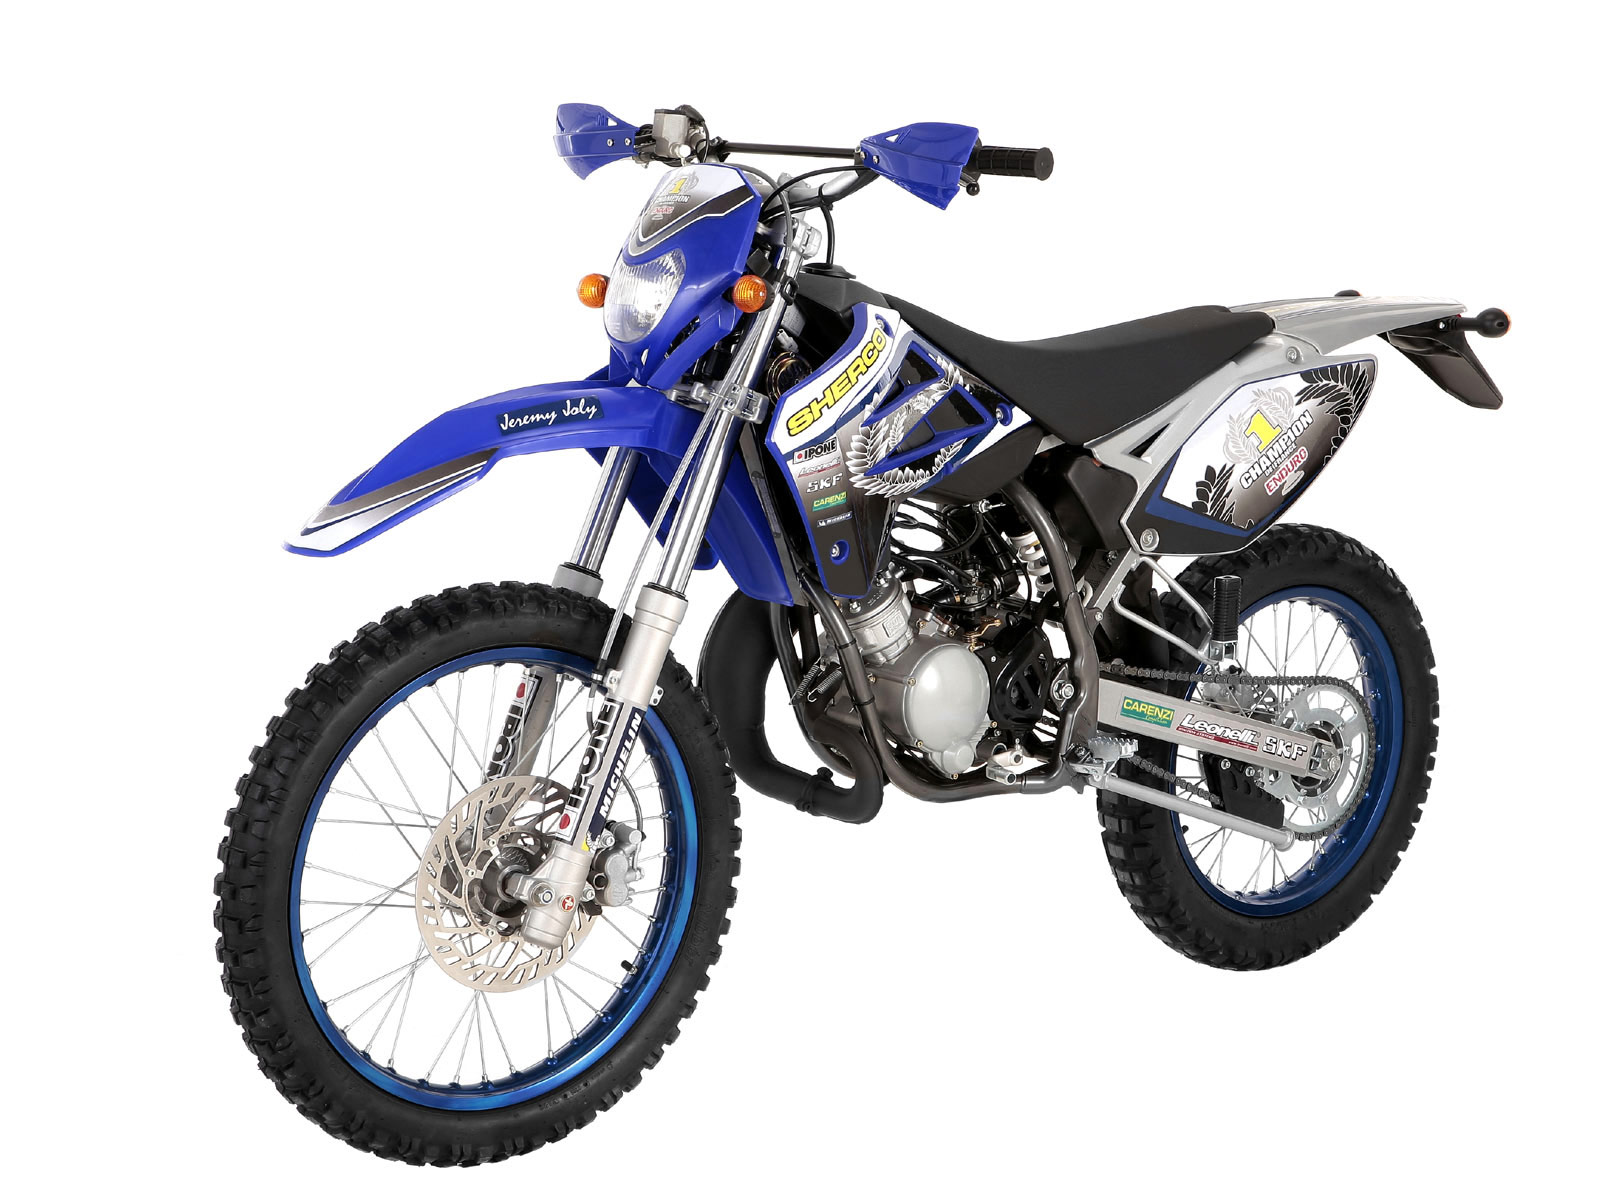 Sherco 125 Enduro Shark Replica images #124644